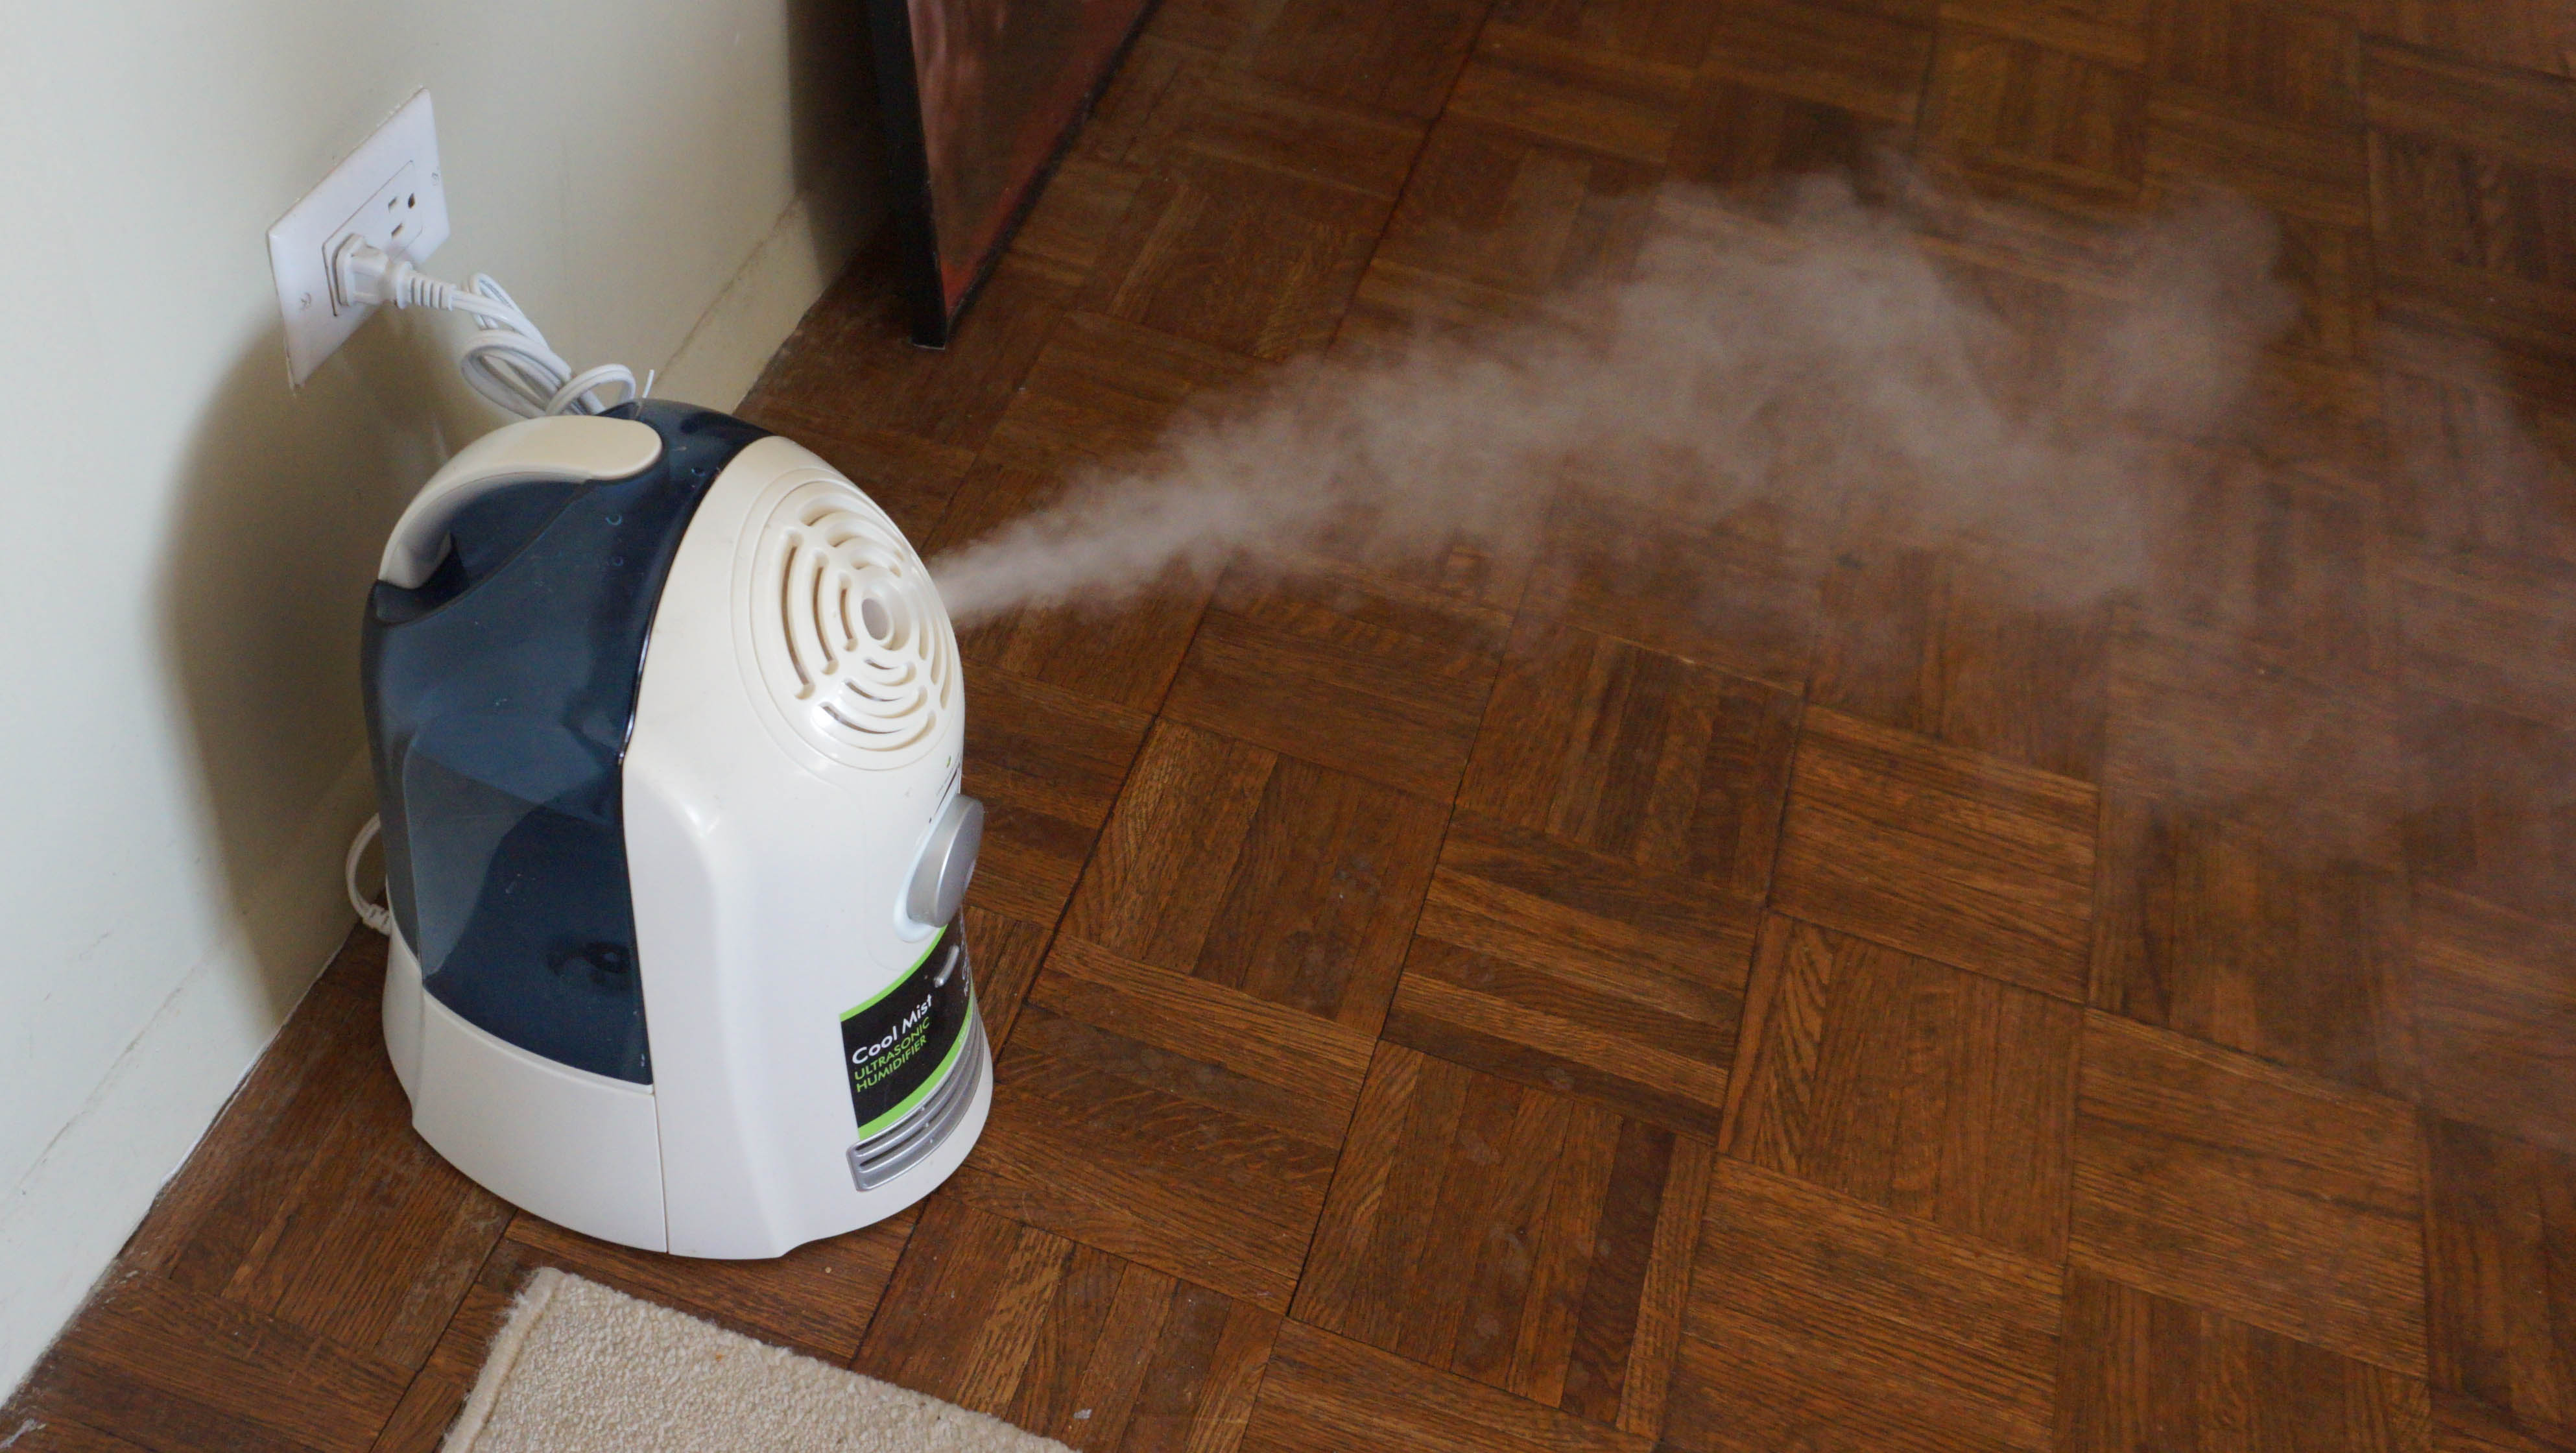 of the Week: Get yourself a room humidifier BatteryPark.TV We Inform #633C23